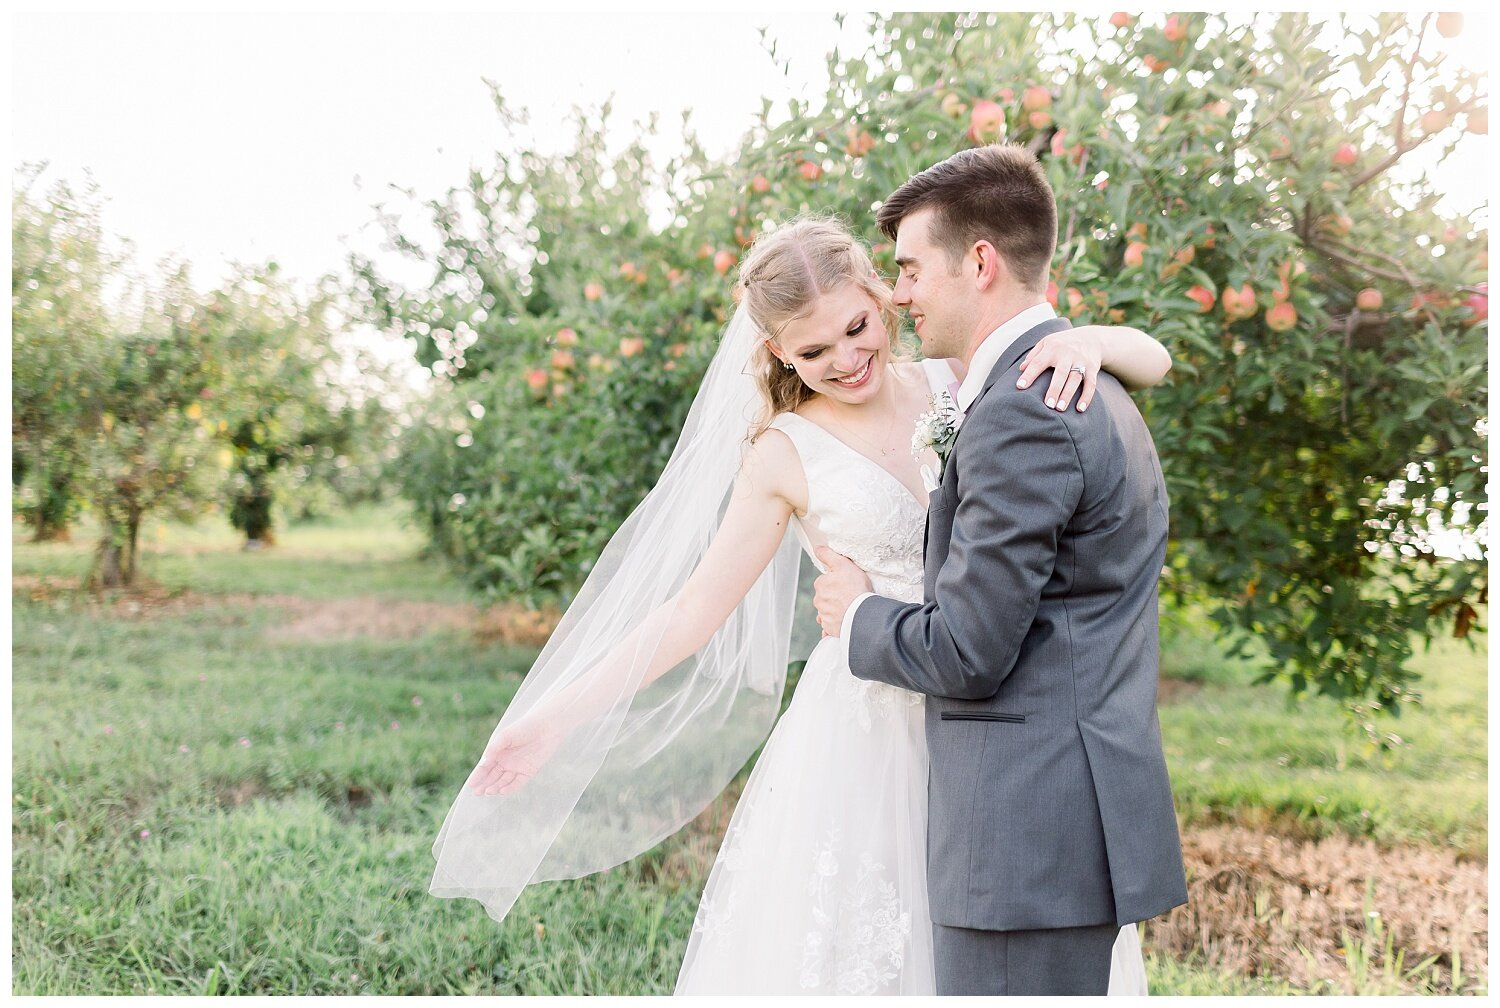 wedding photos in an apple orchard